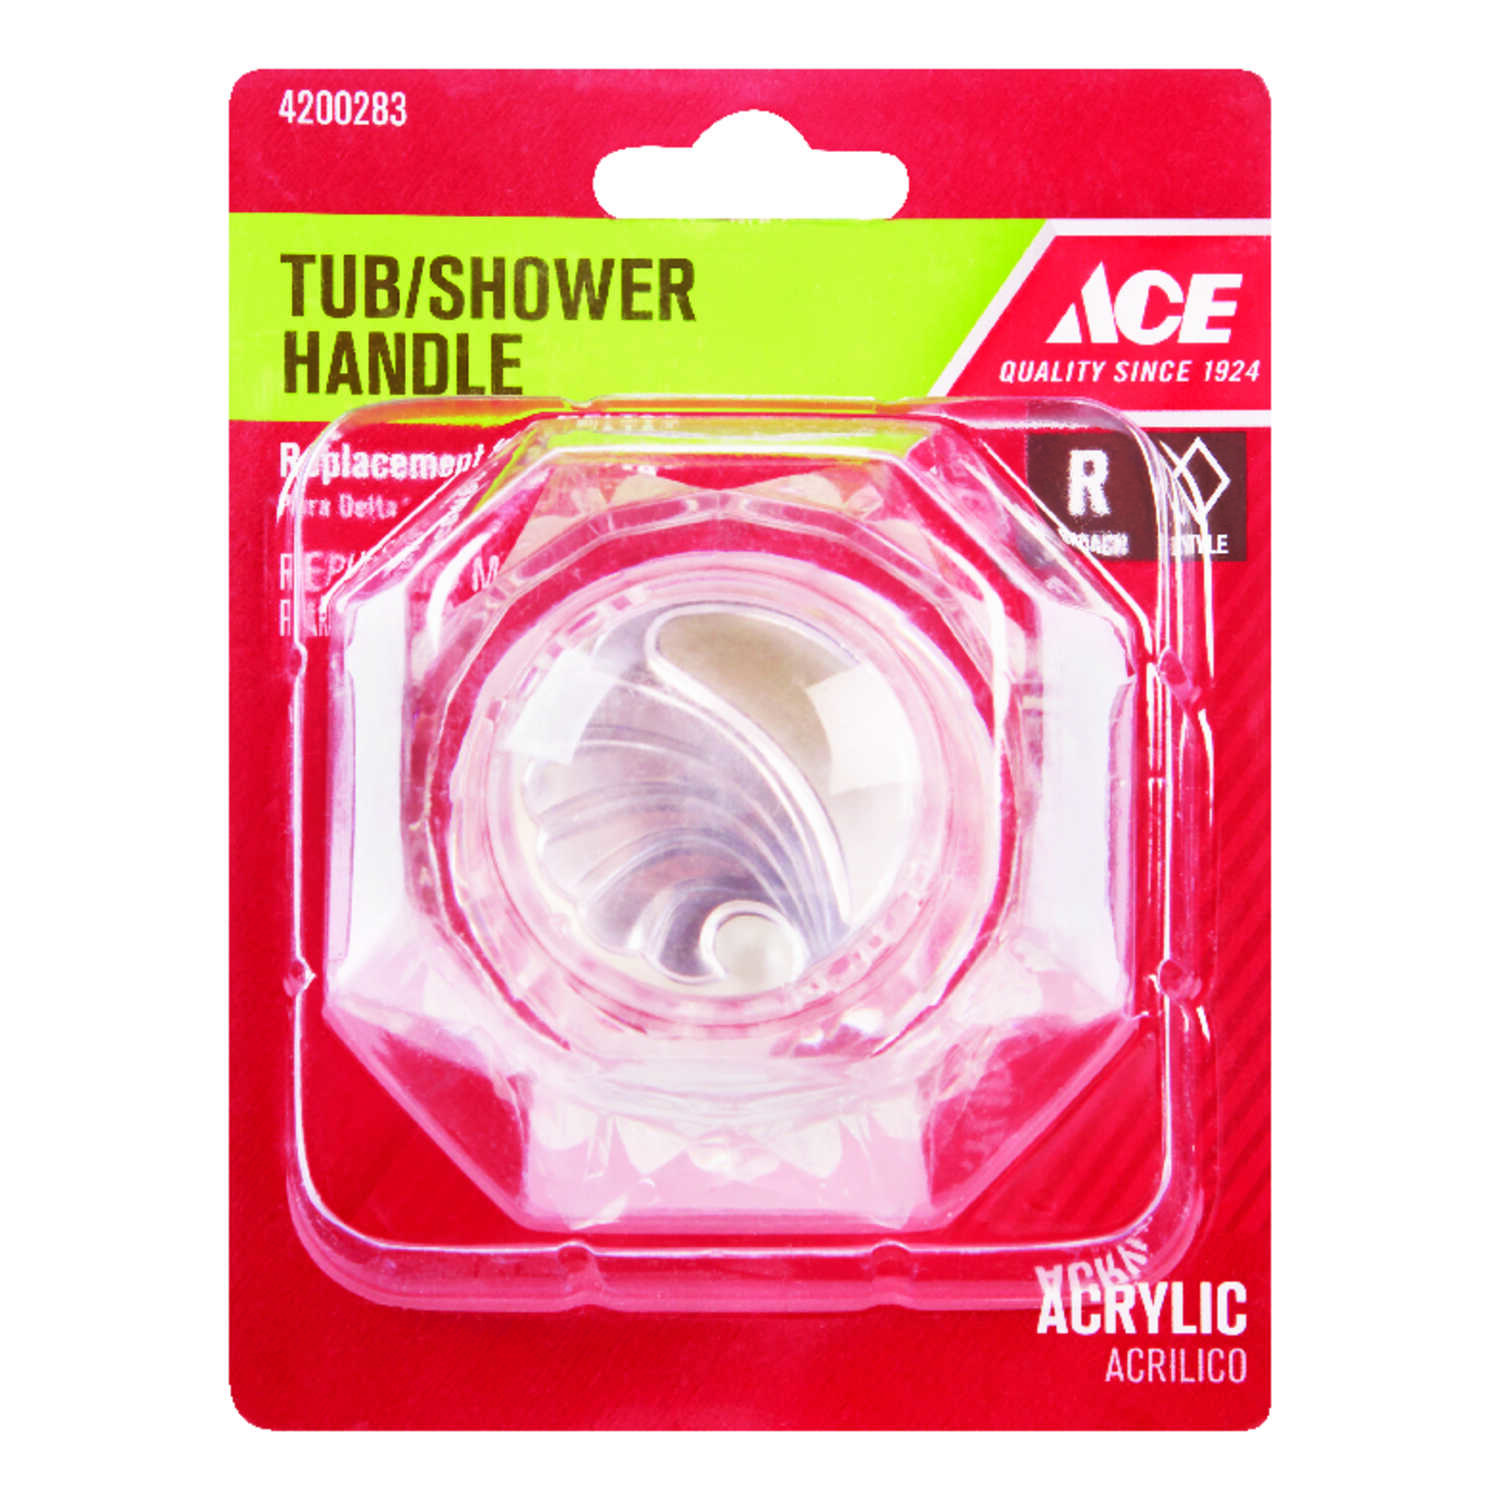 Ace  Broach  Acrylic  Clear  Tub and Shower Handle